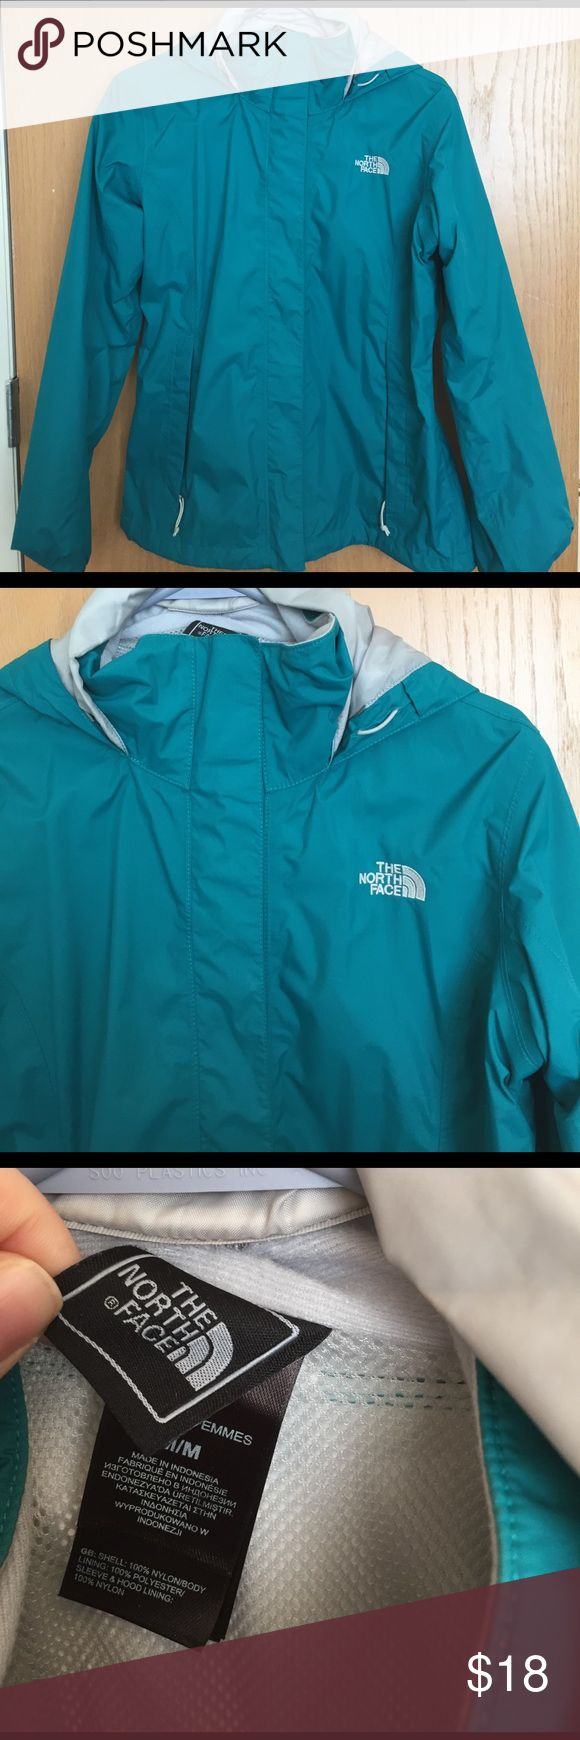 North Face Jacket A great lightweight windbreaker and rain jacket. Its a beautiful blue/green color, shows no signs of wear! The North Face Jackets & Coats